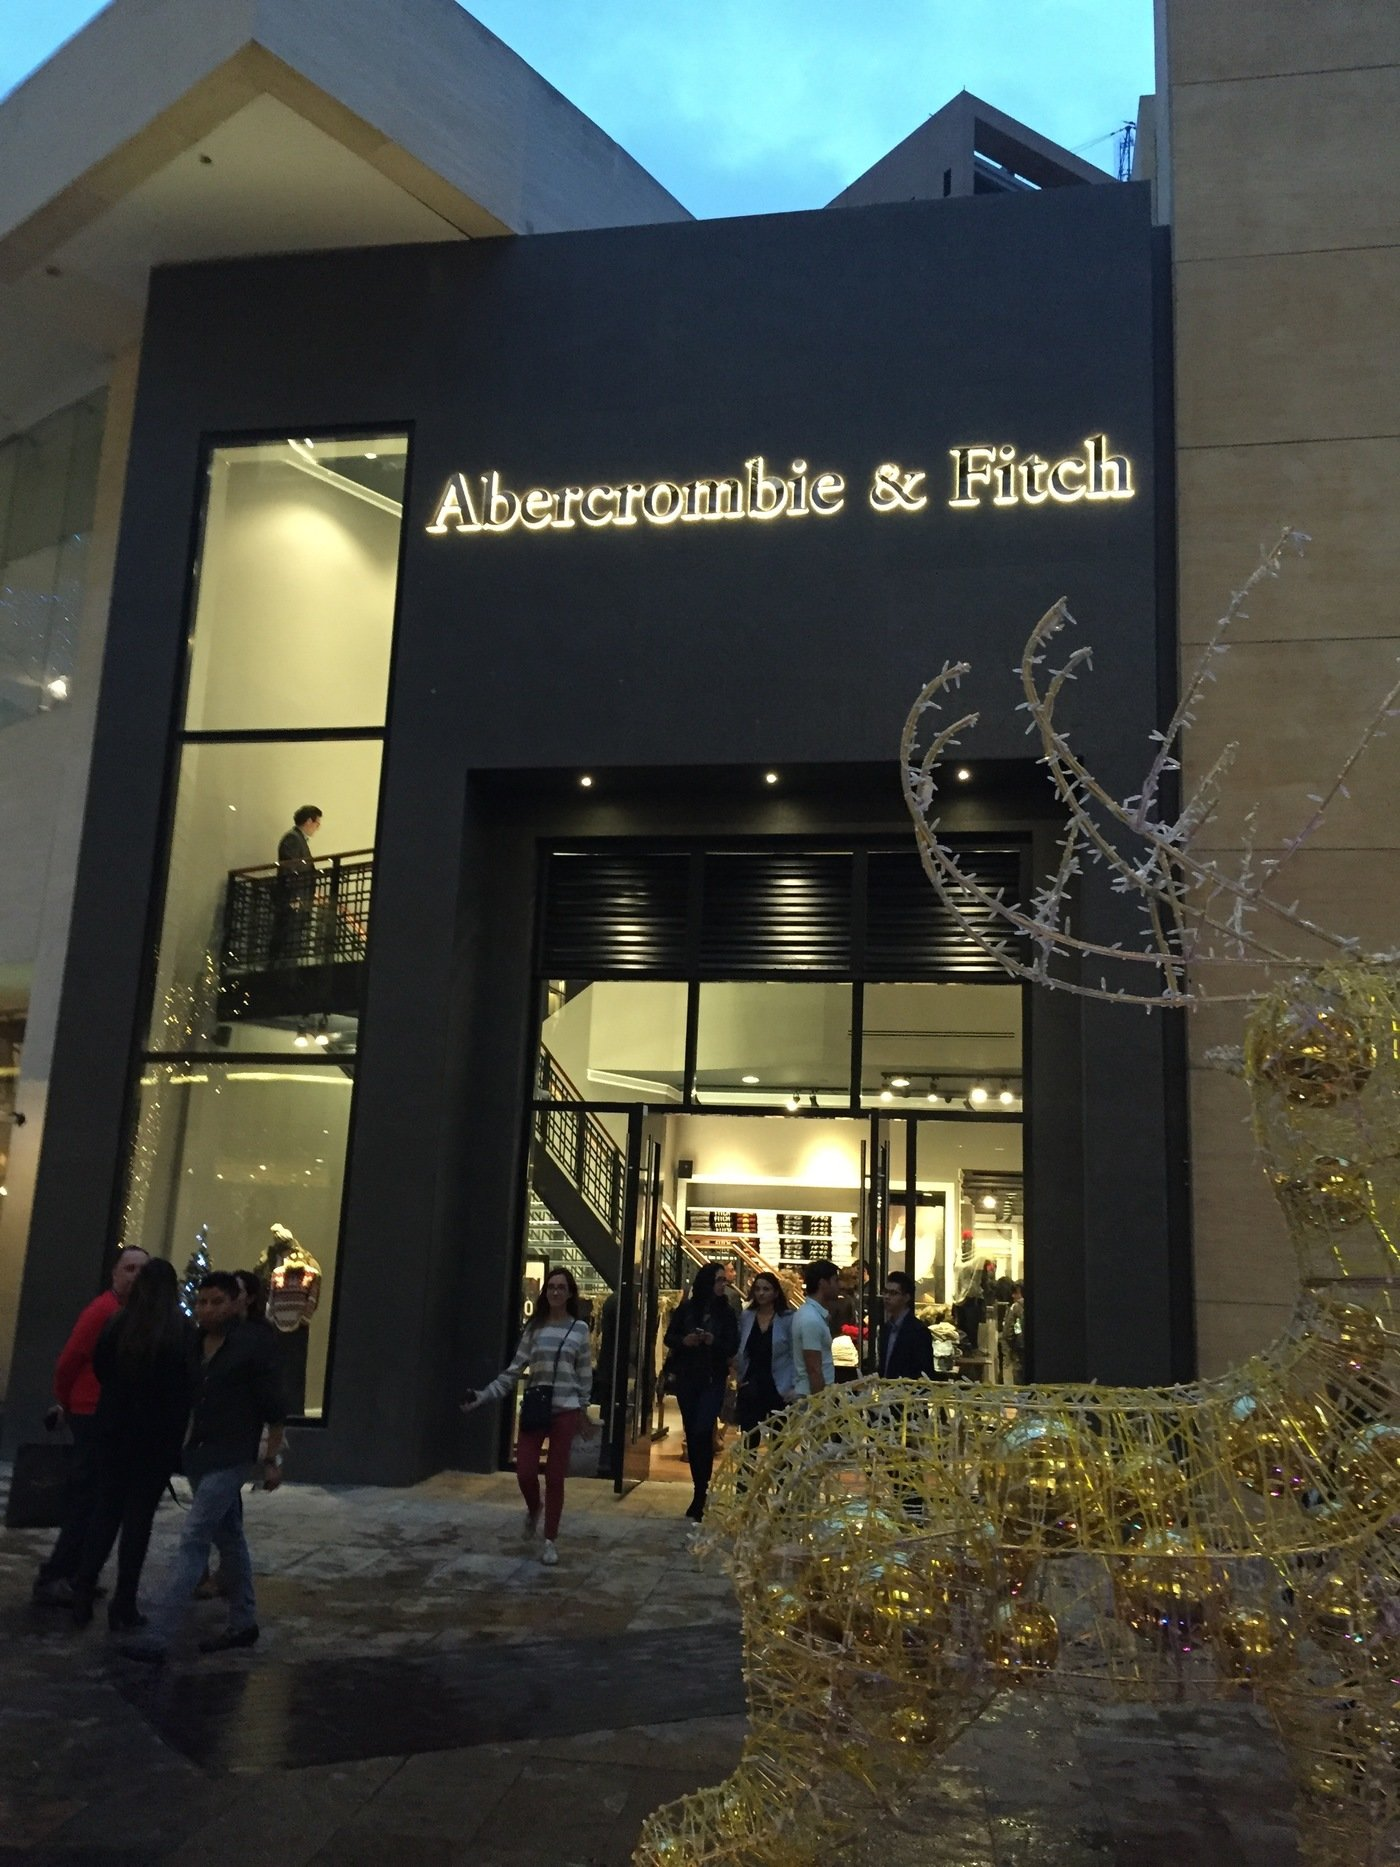 Retail abercrombie fitch by jason welker at - Interior design jobs in michigan ...